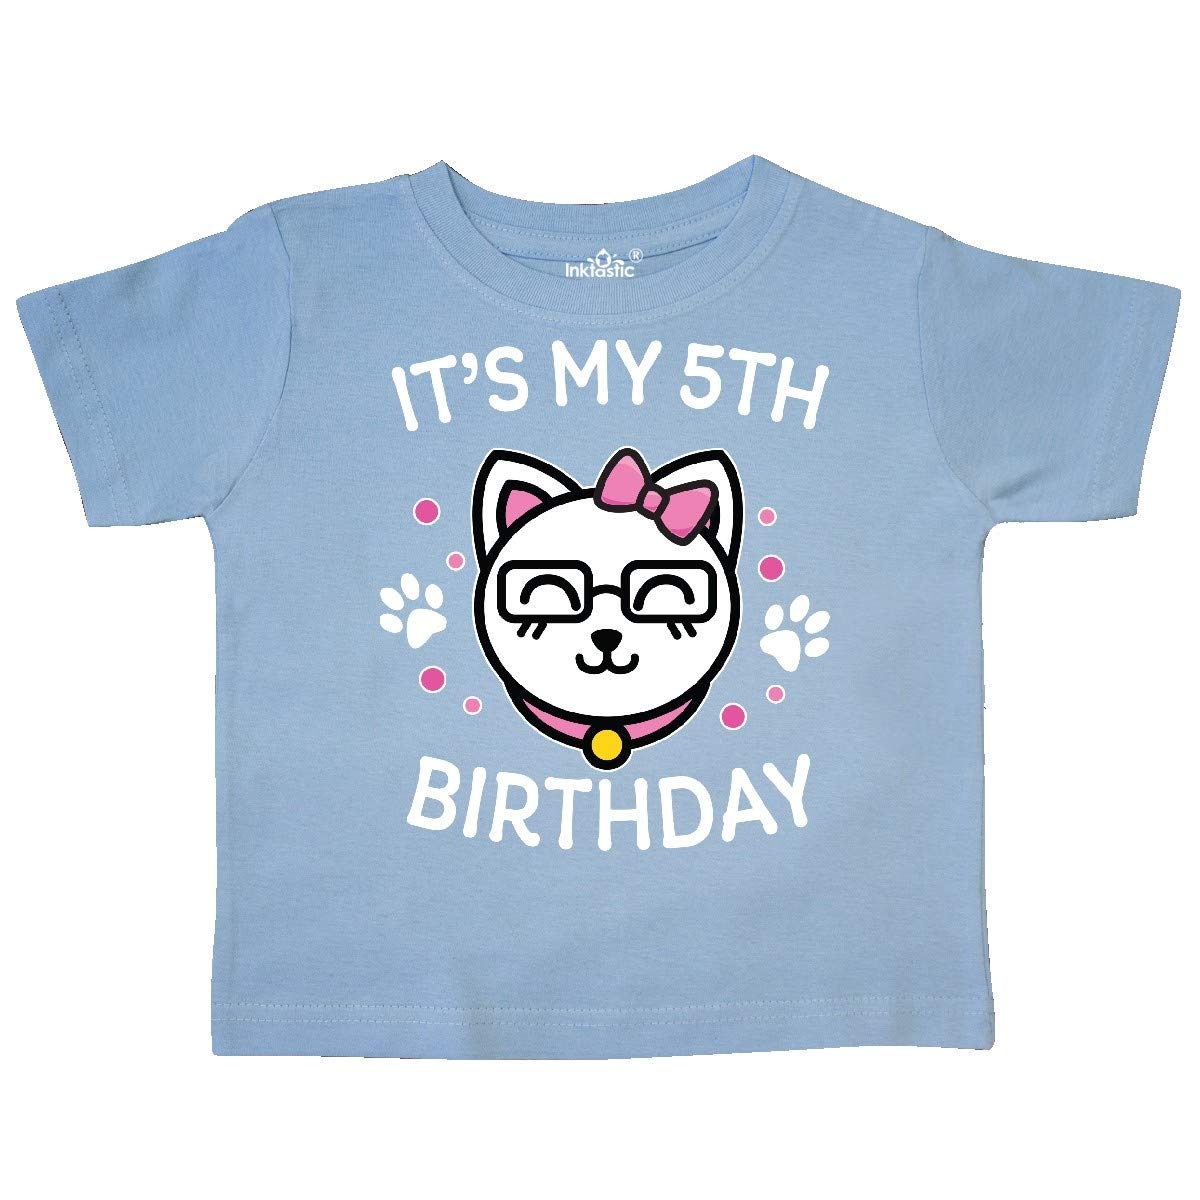 inktastic Its My 5th Birthday with Cat in Glasses Toddler T-Shirt